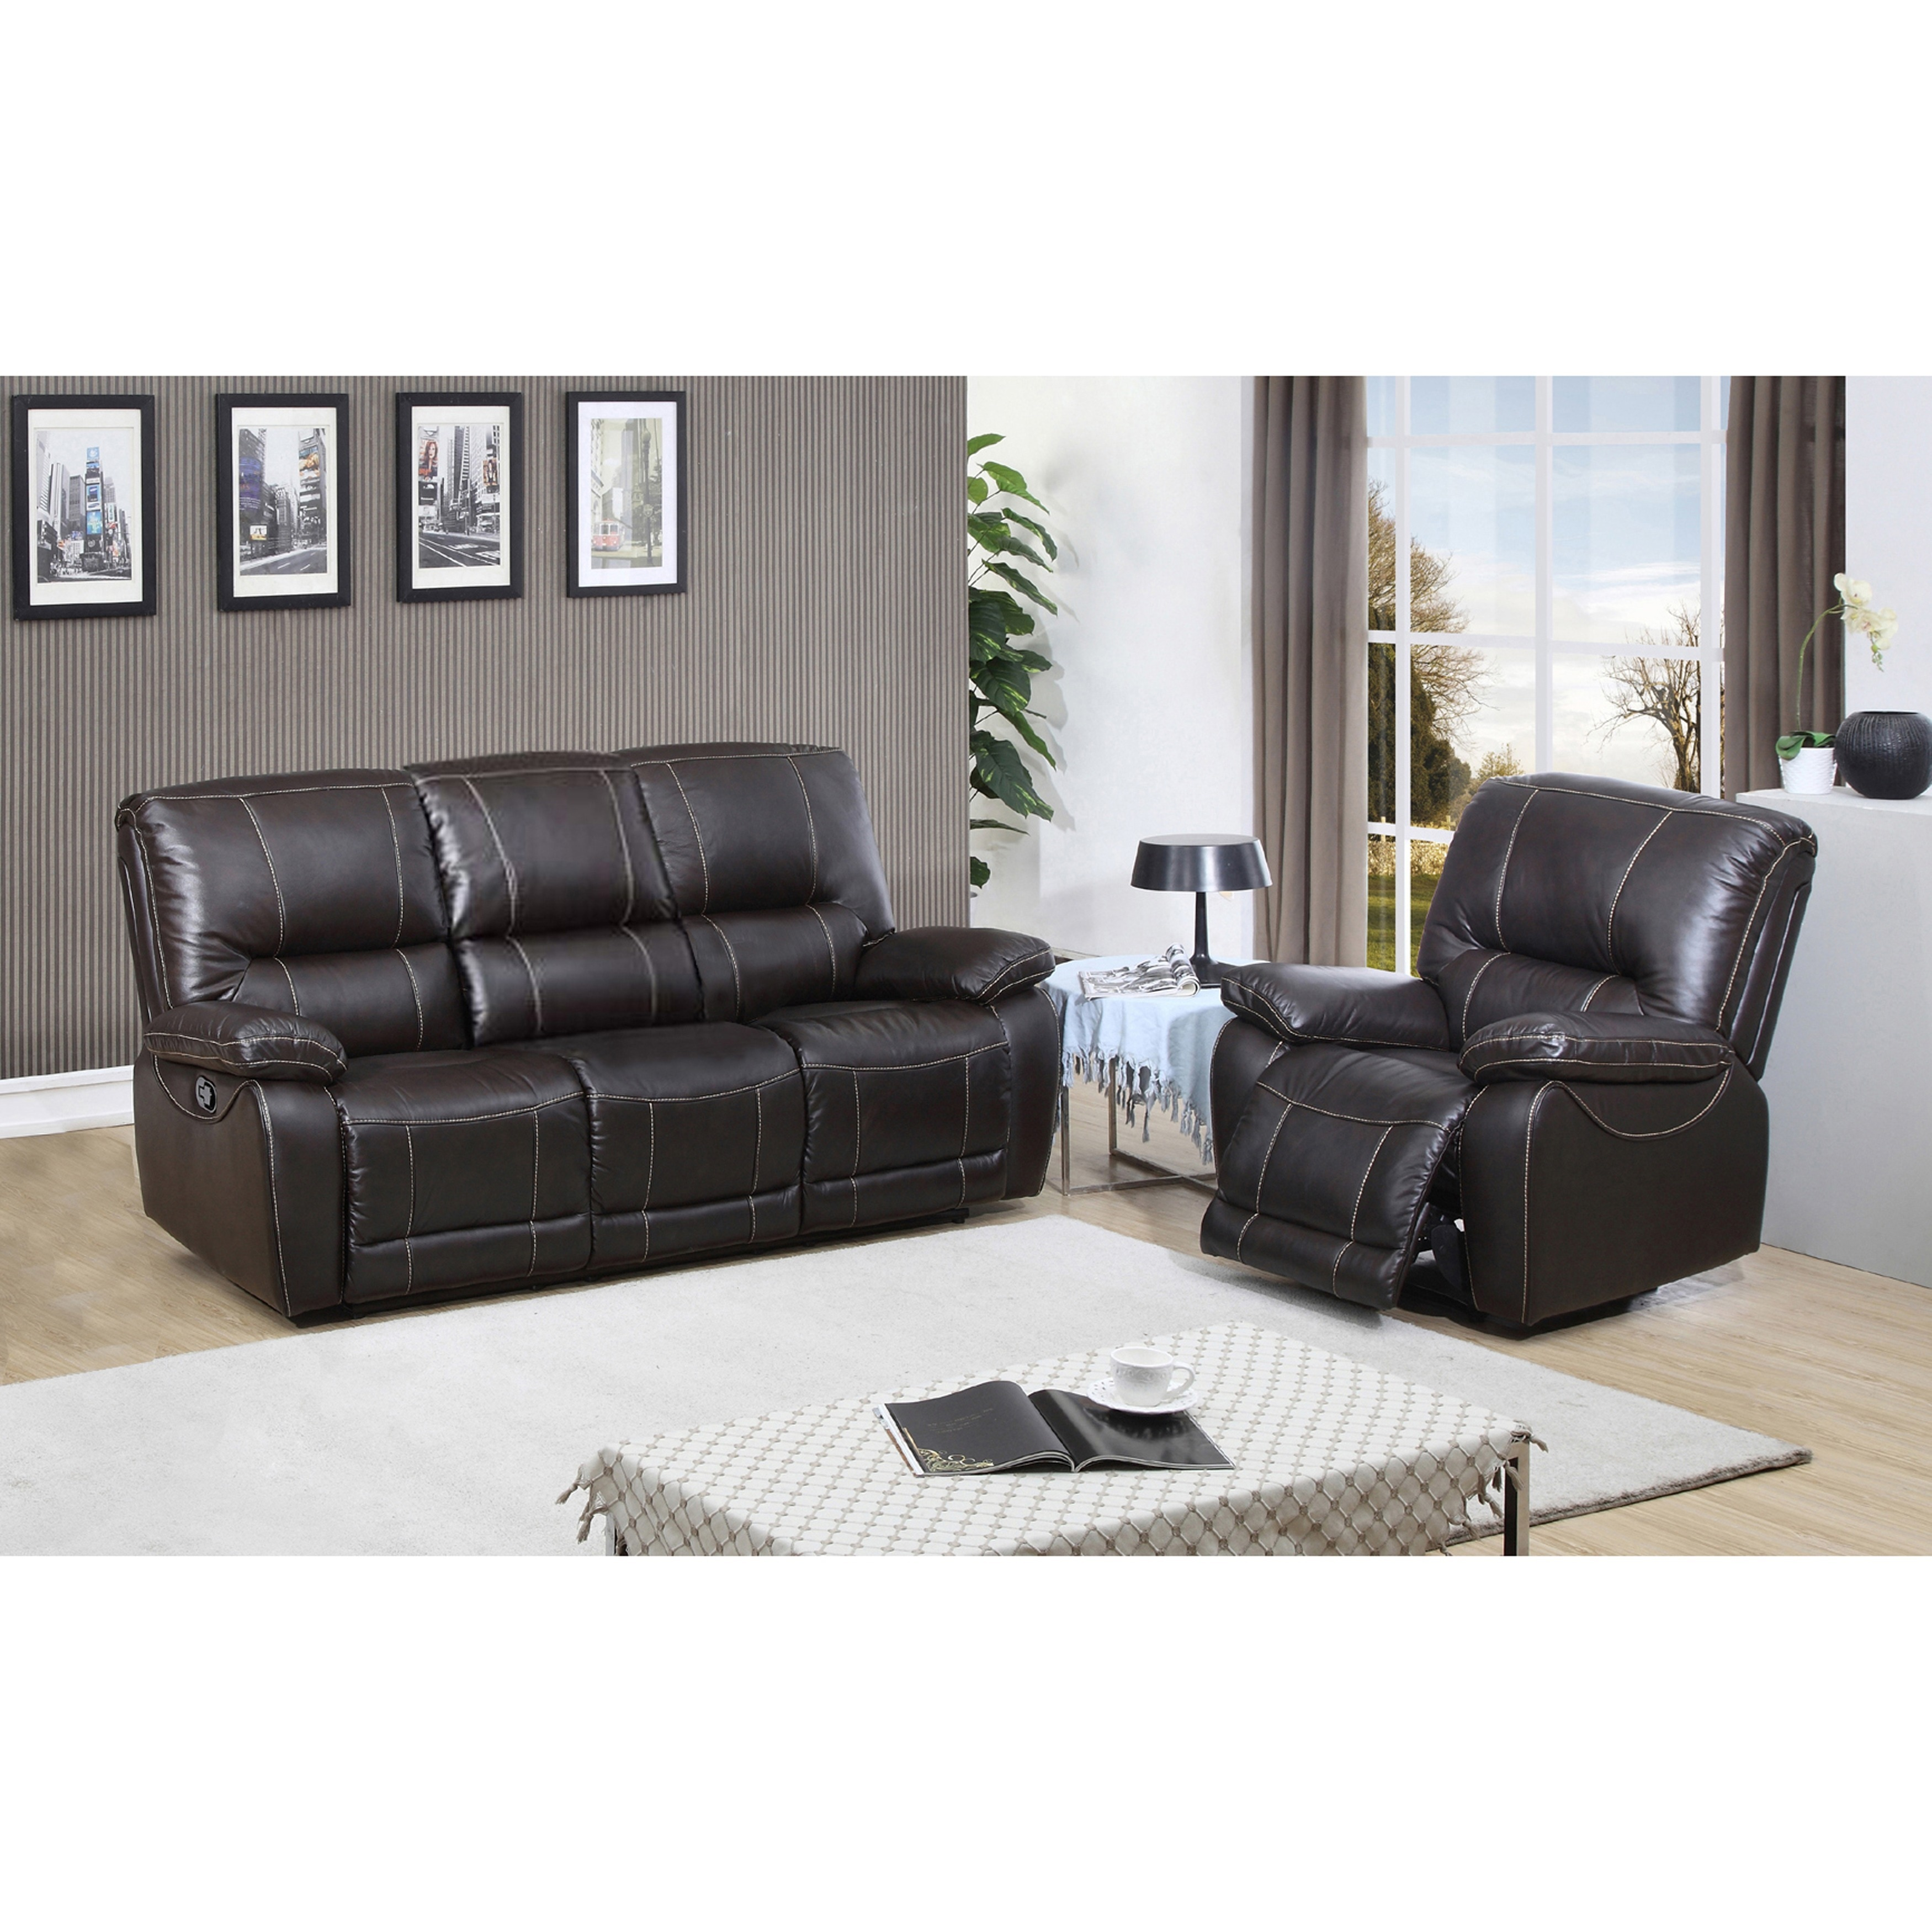 Walton Brown Top Grain Leather Power Reclining Sofa and R...